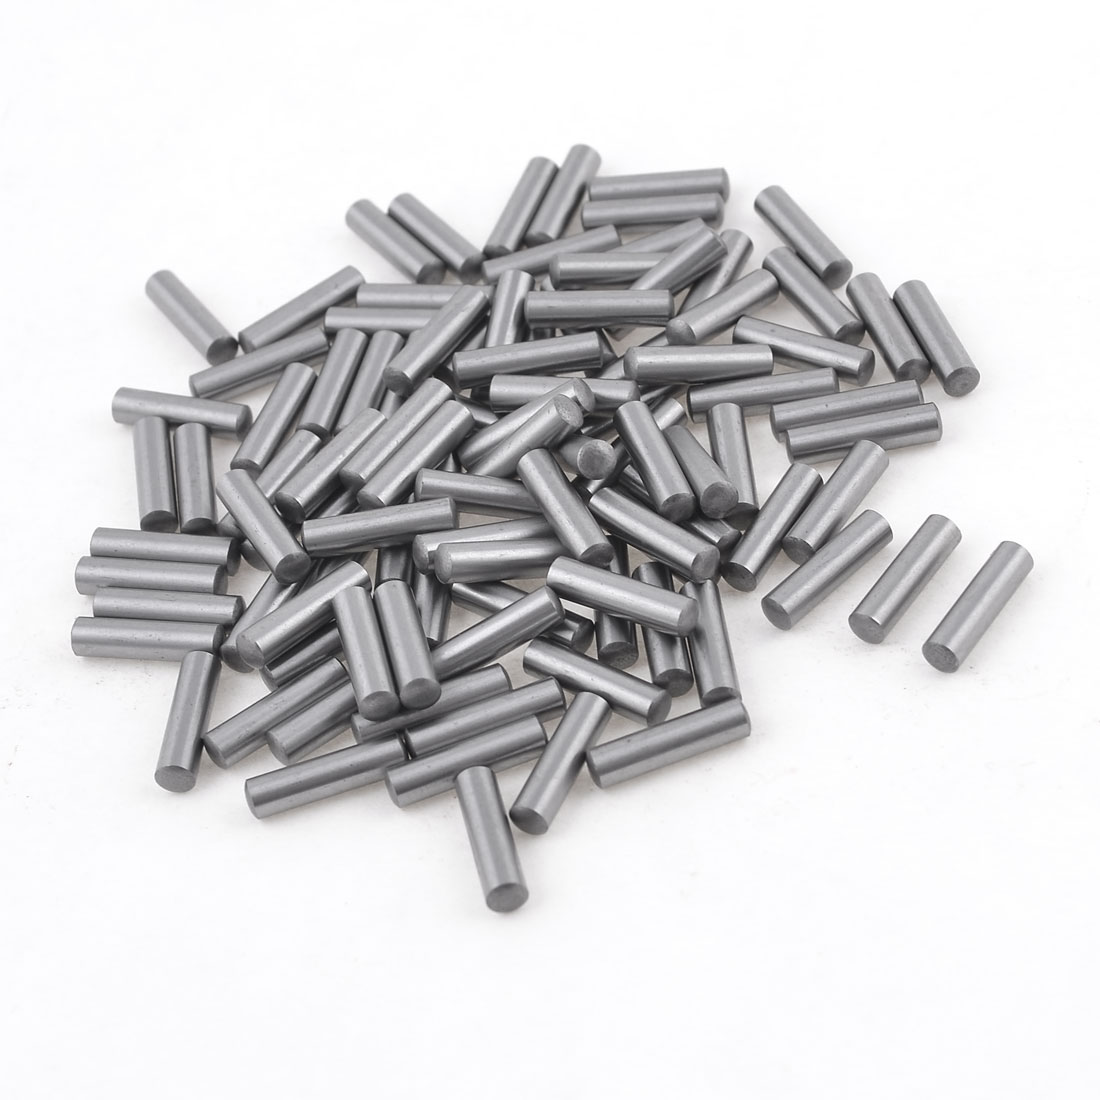 100 Pcs 4mm x 15.8mm Parallel Dowel Pins Fasten Elements